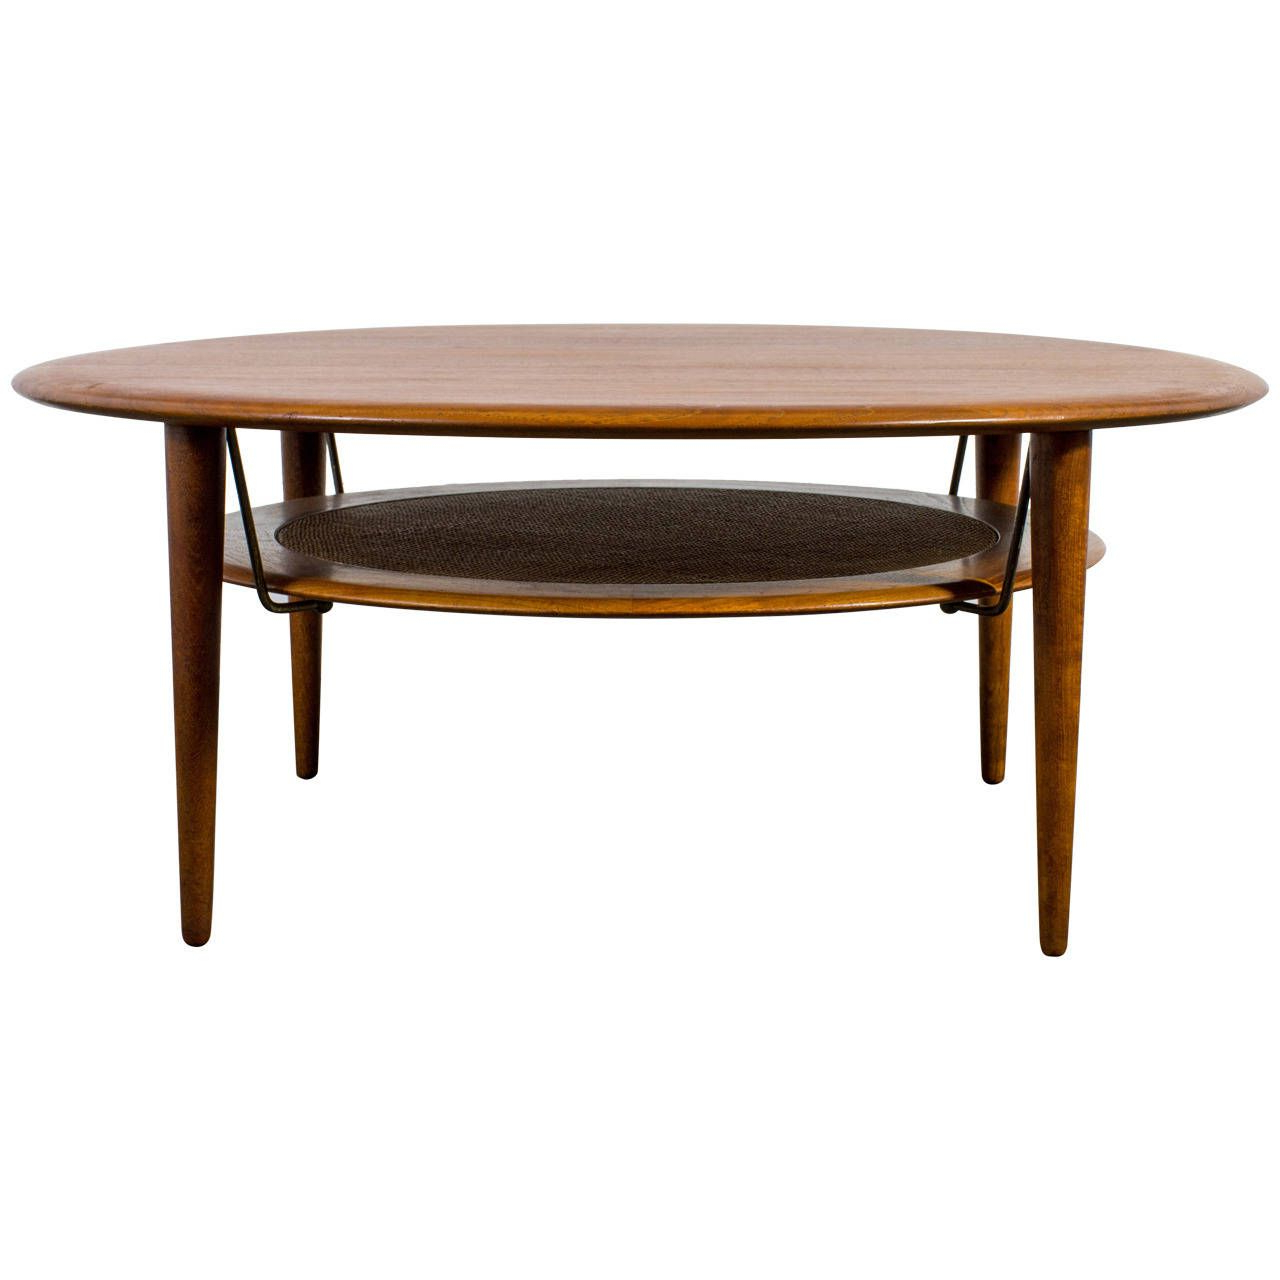 Round Teak Coffee Tables With Regard To Current Danish Modern Round Teak Coffee Tablepeter Hvidt And Orla (View 12 of 20)